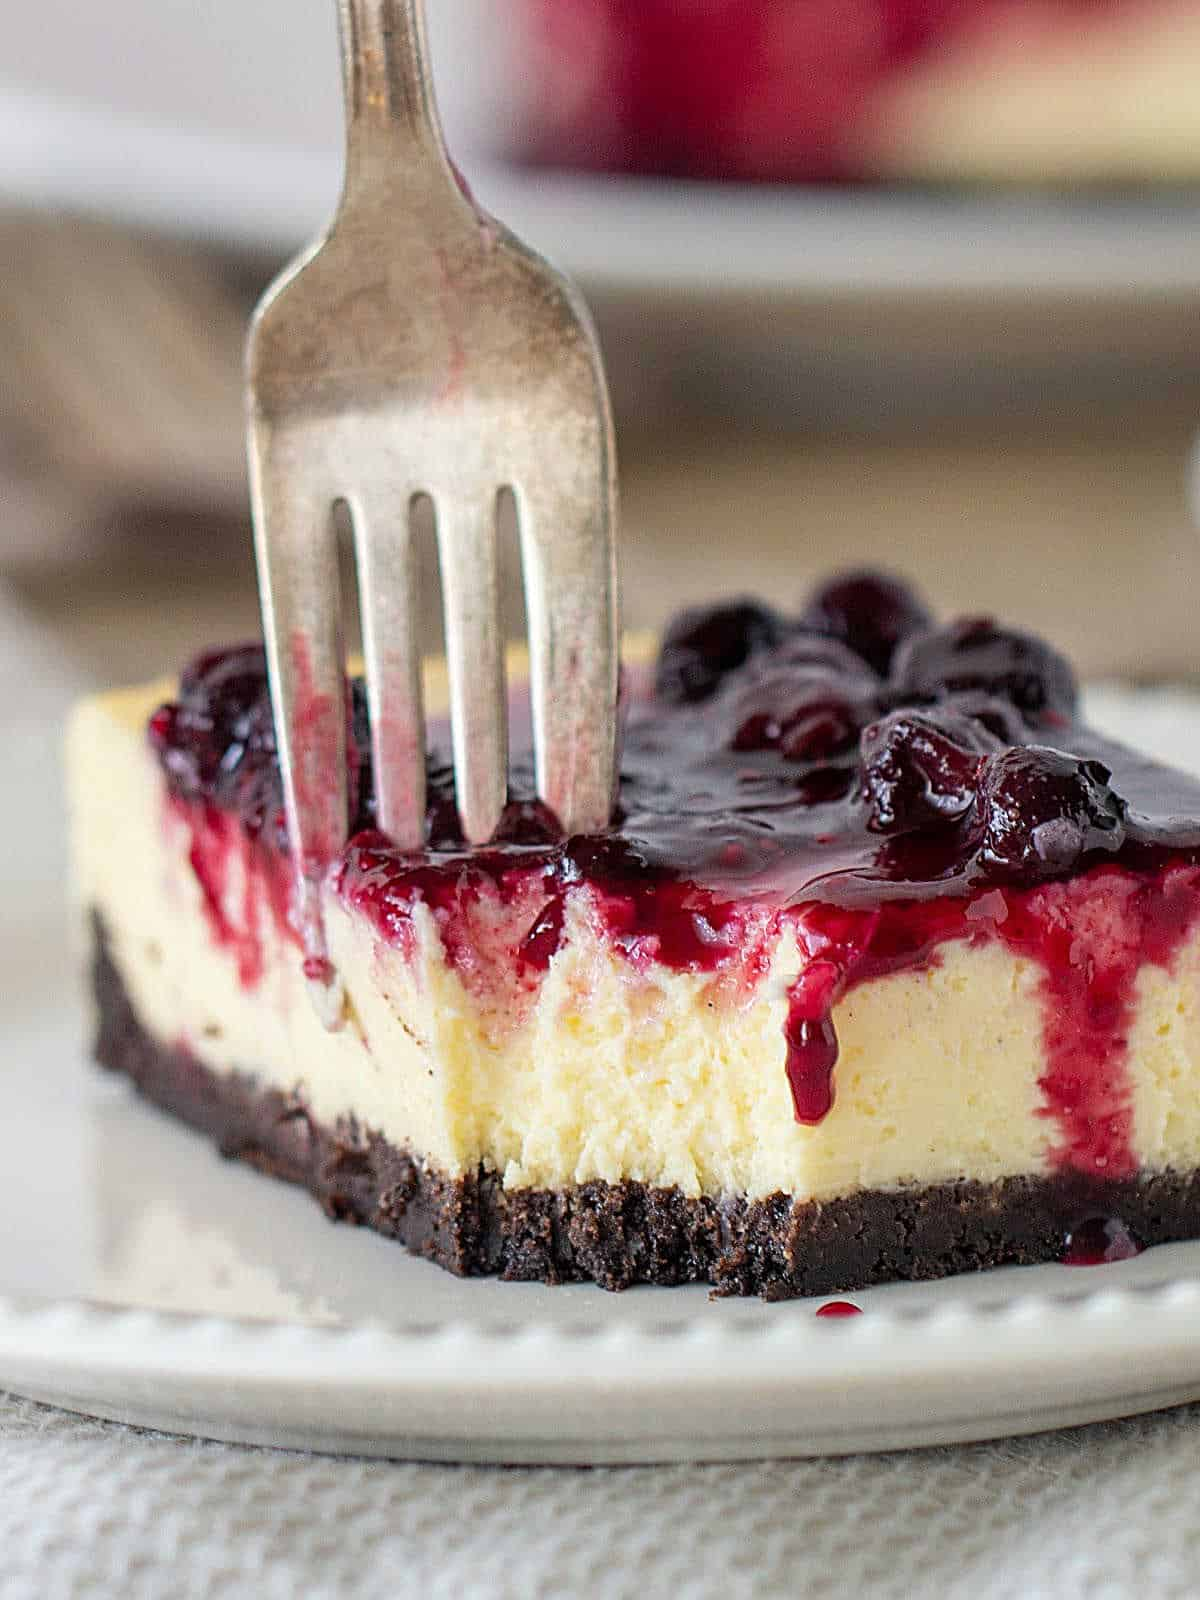 Close-up of cheesecake square on white plate, fork digging into it, berry topping